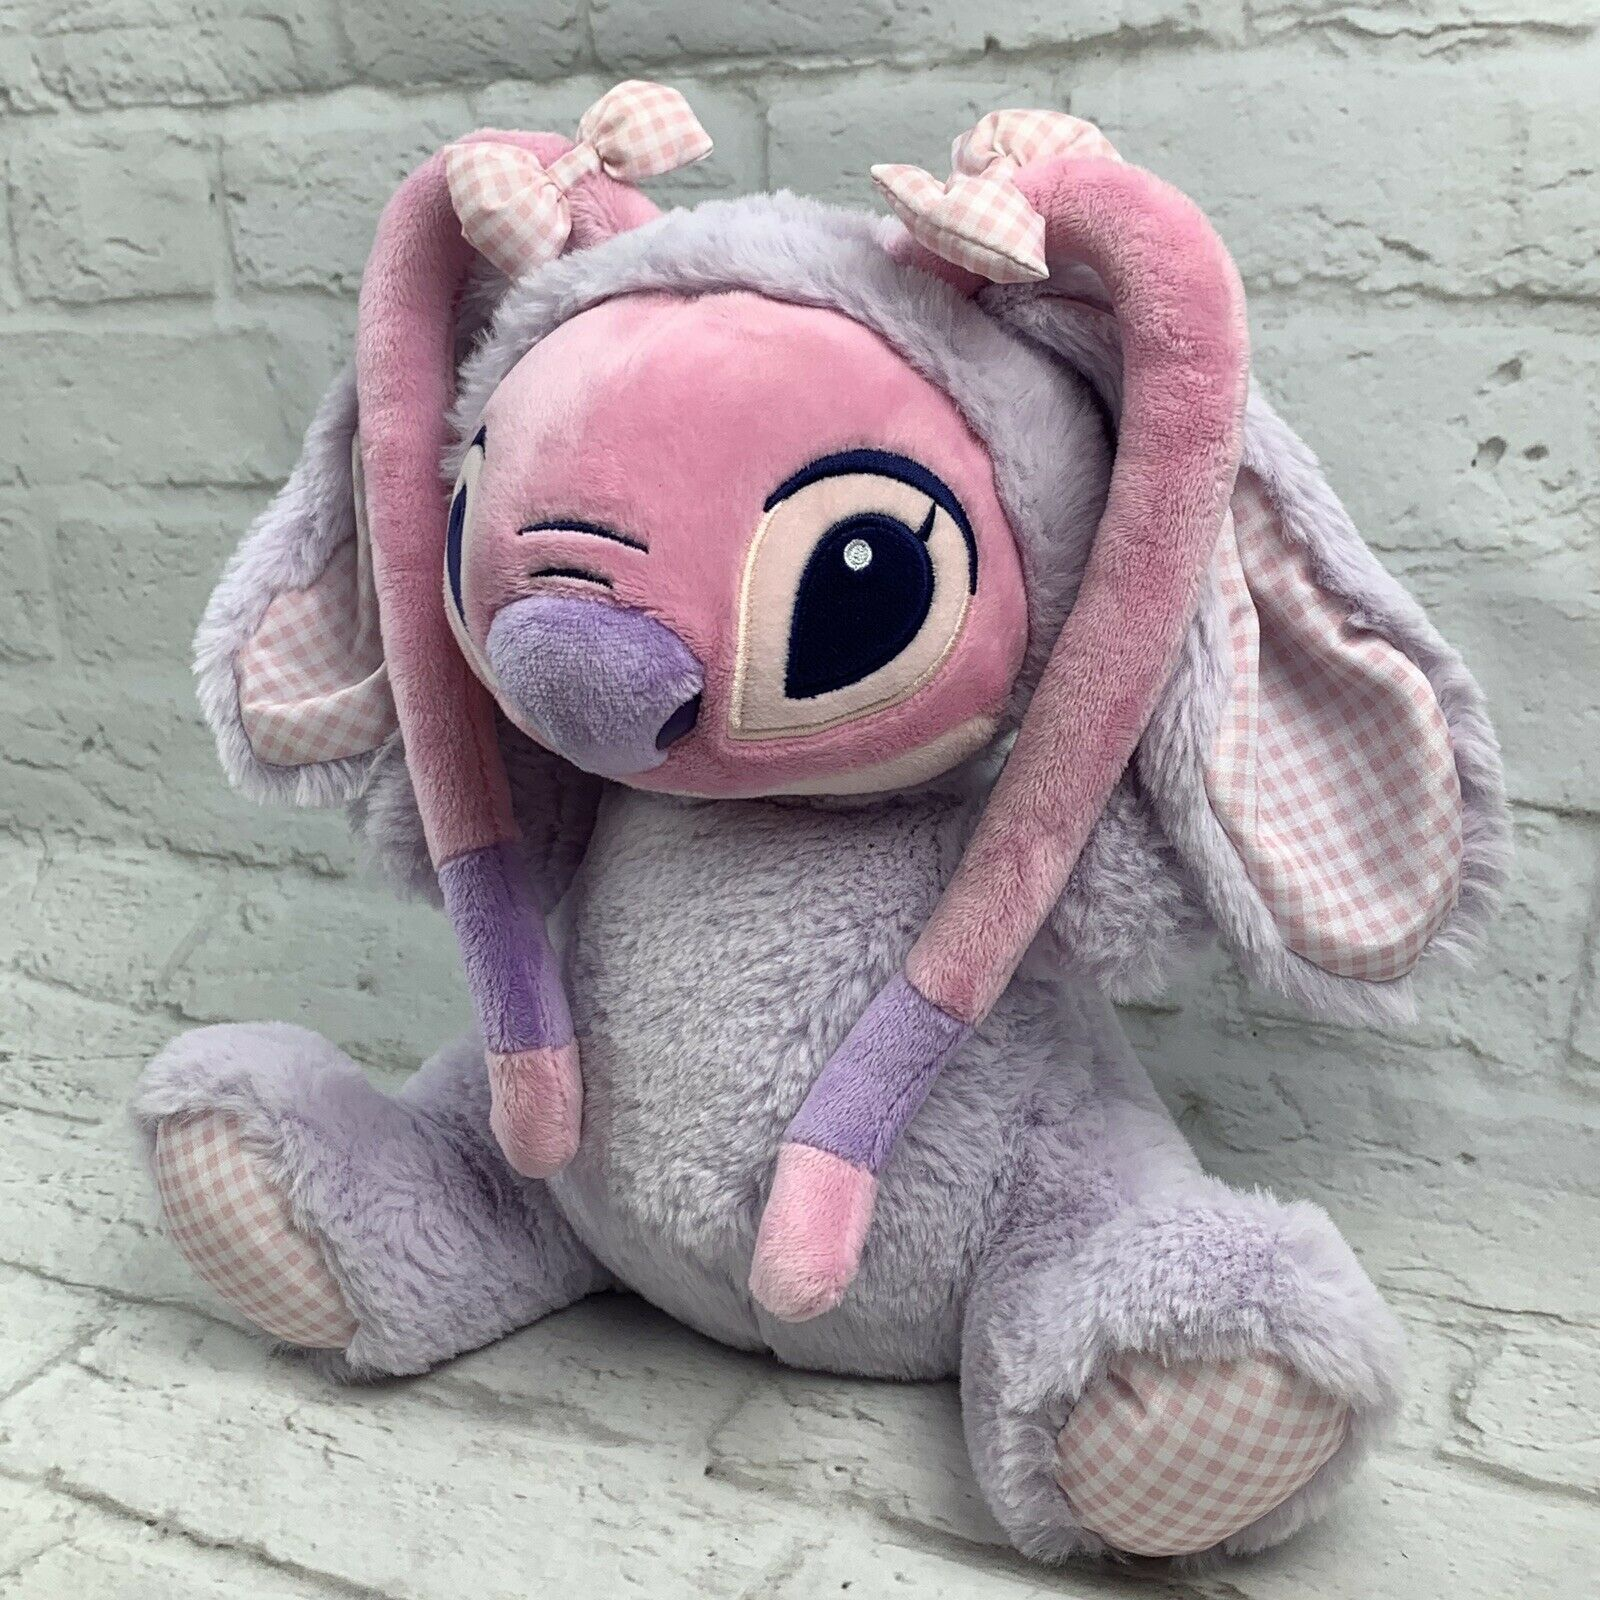 Disney Store Angel Bunny Plush 11'' LILO and Stitch Gift Easter Bunny Basket image 3